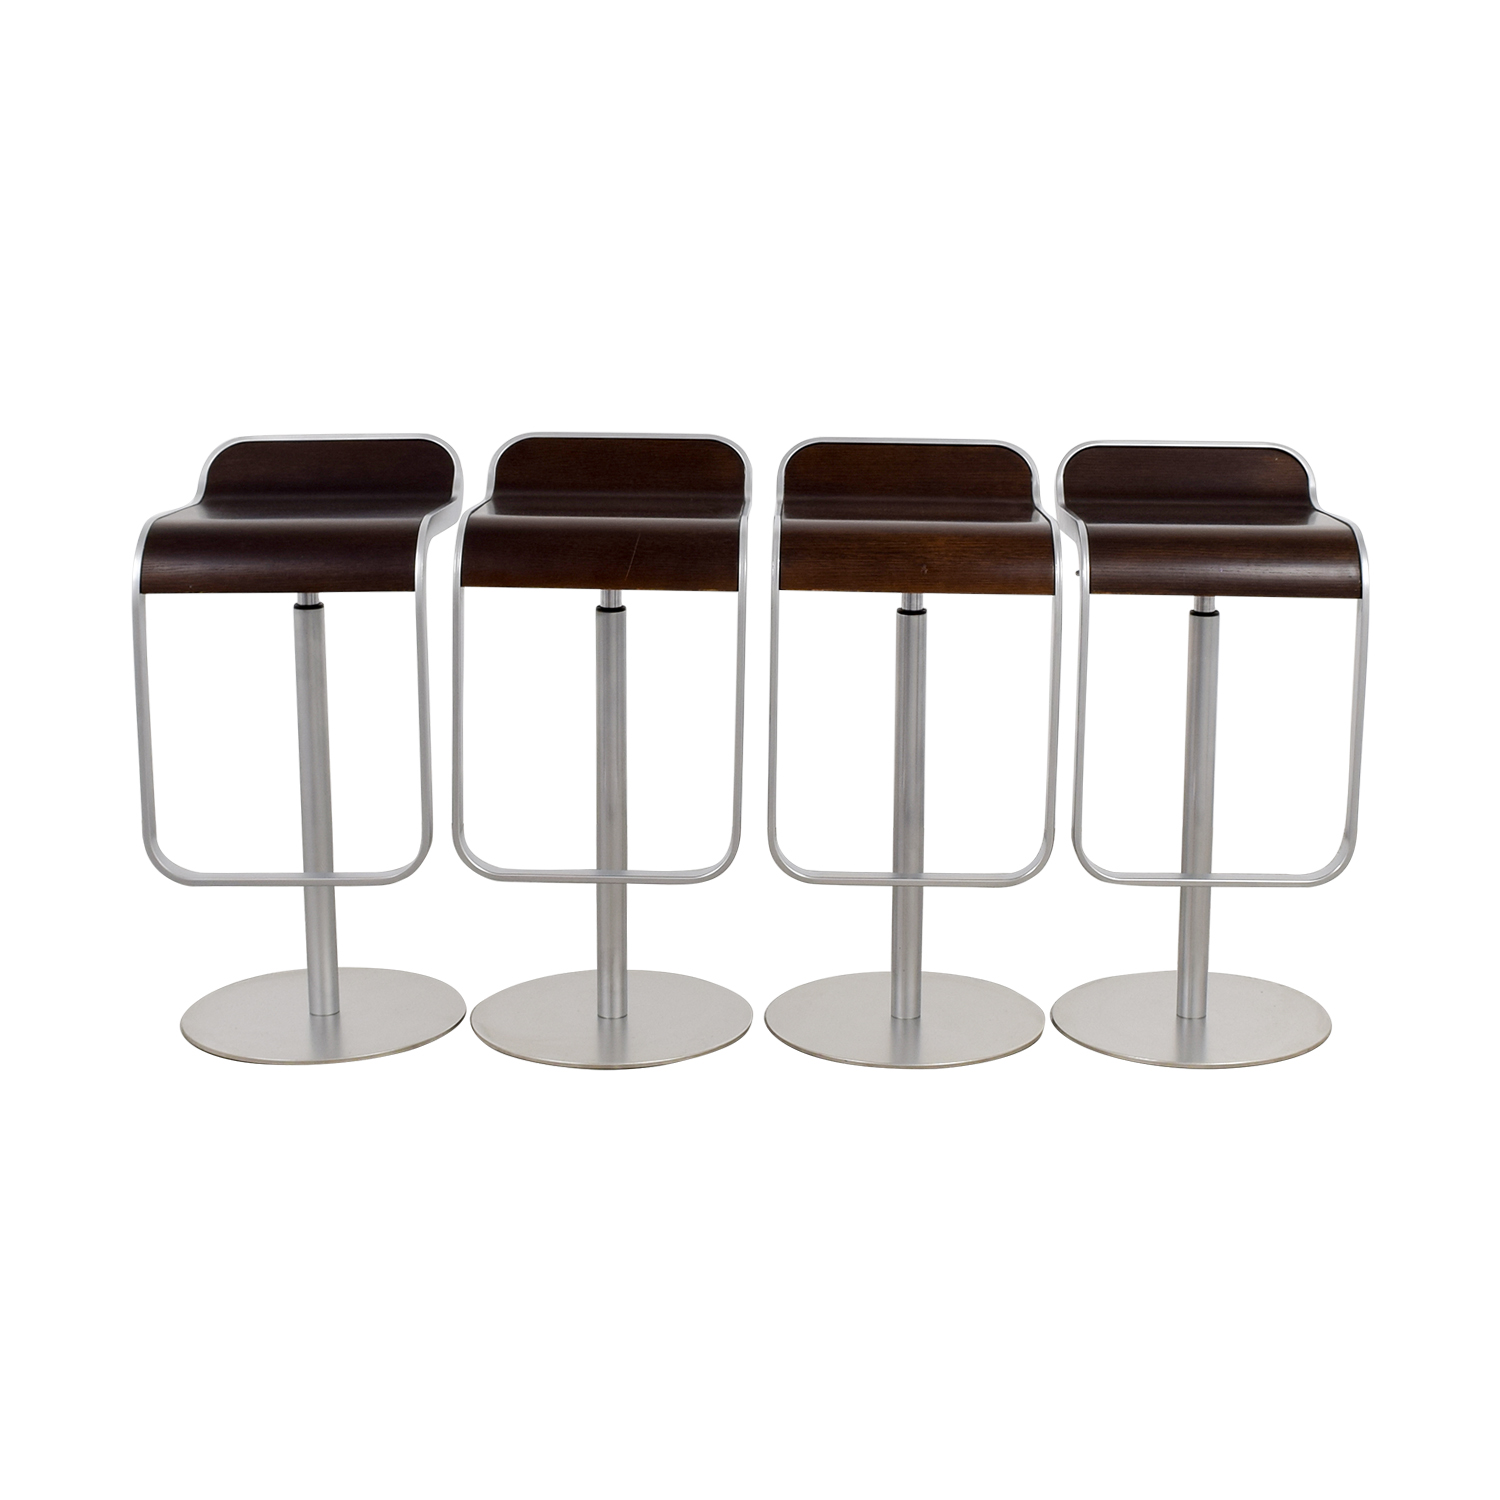 80 off design within reach design within reach lem piston stools chairs